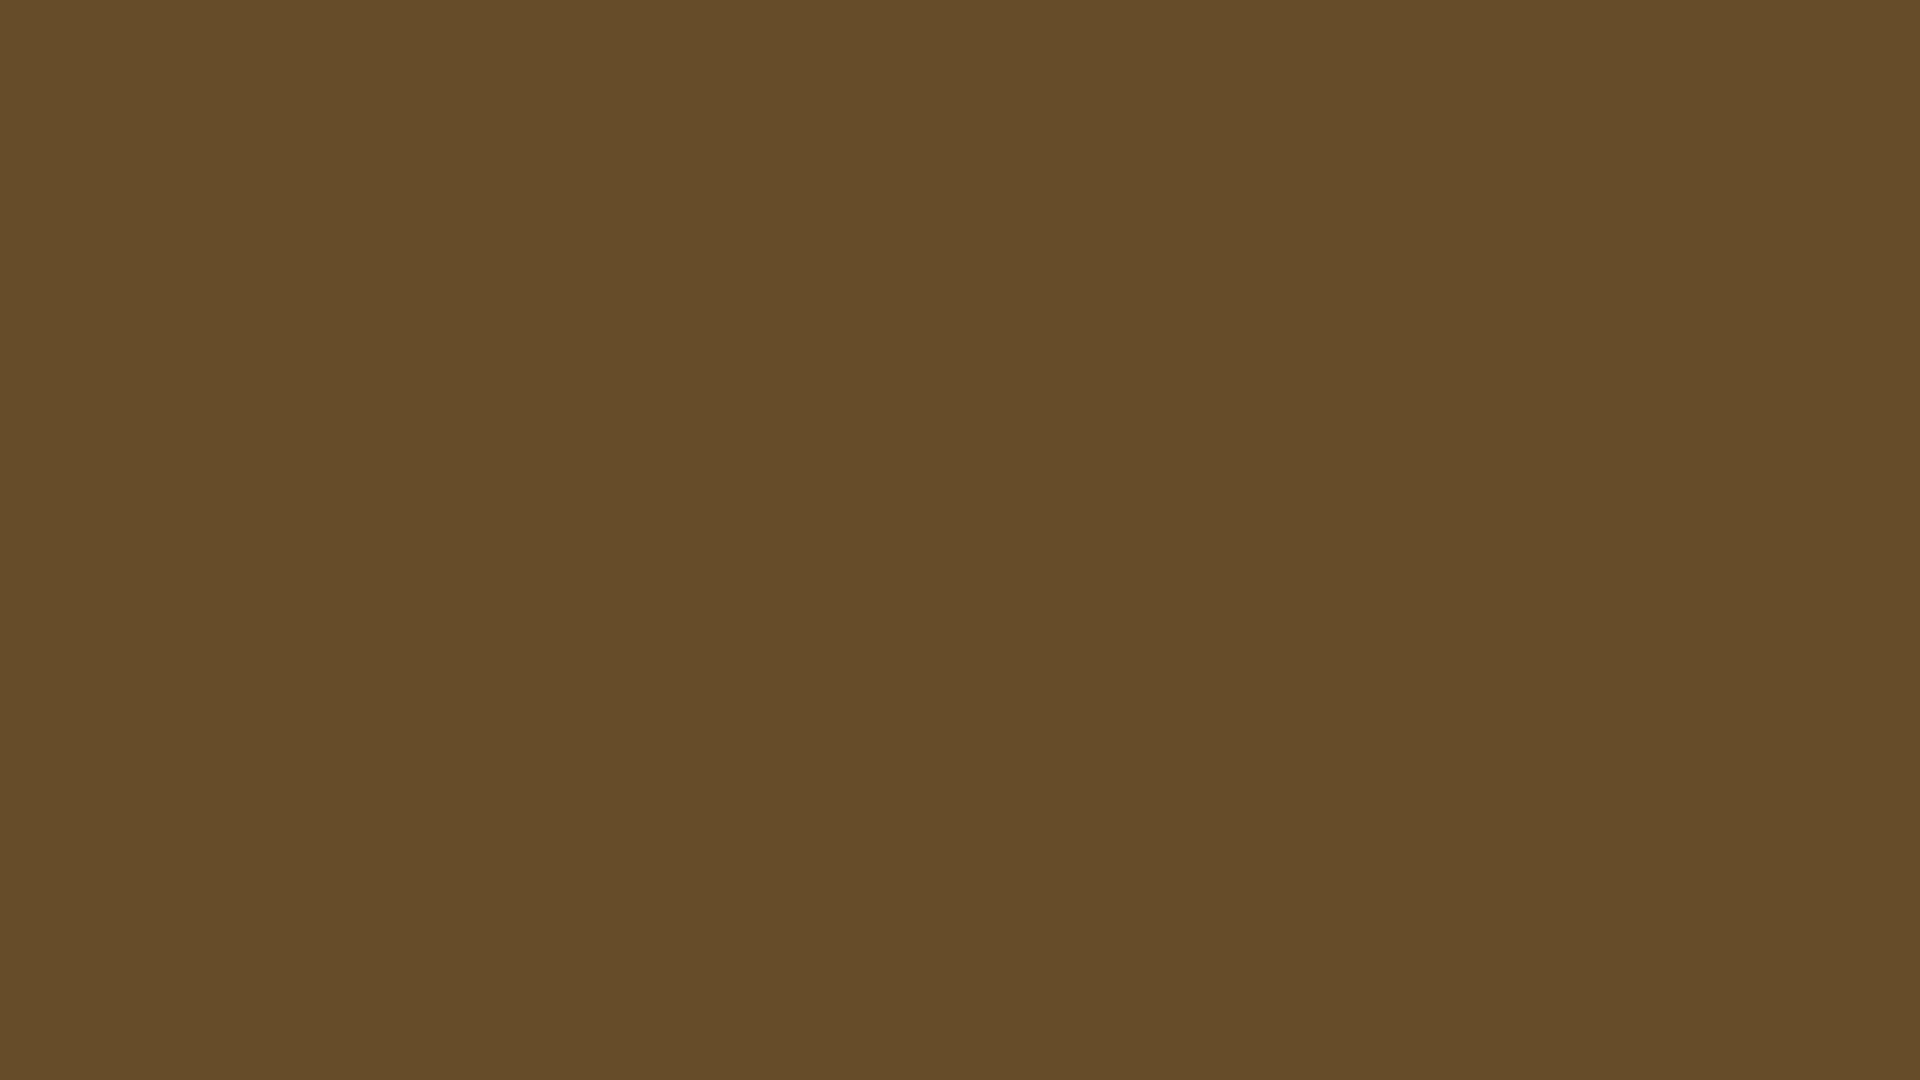 1920x1080 Donkey Brown Solid Color Background